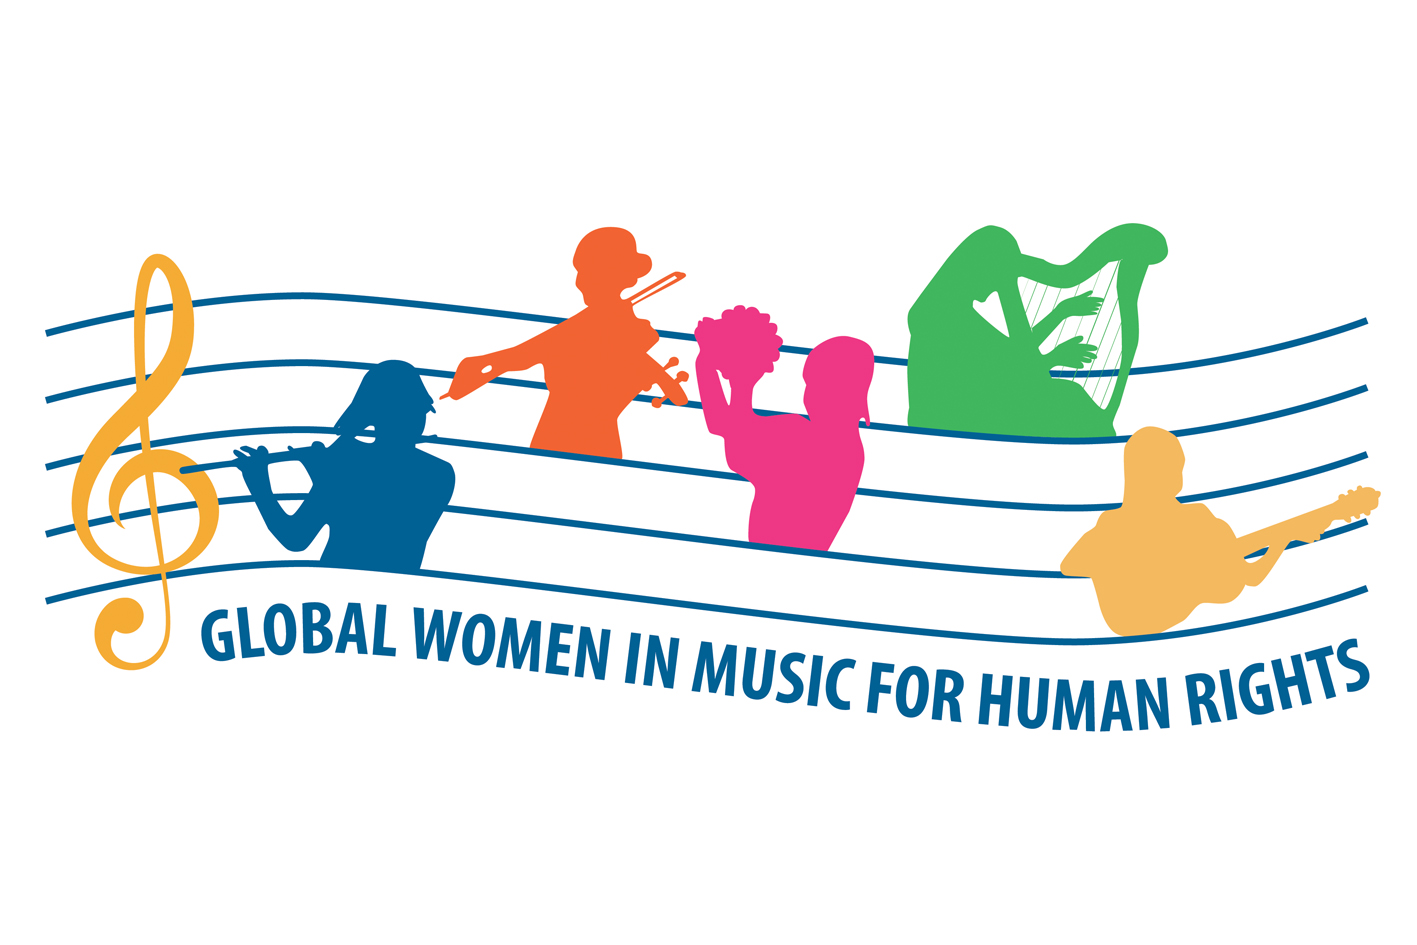 Global Women in Music for Human Rights logo